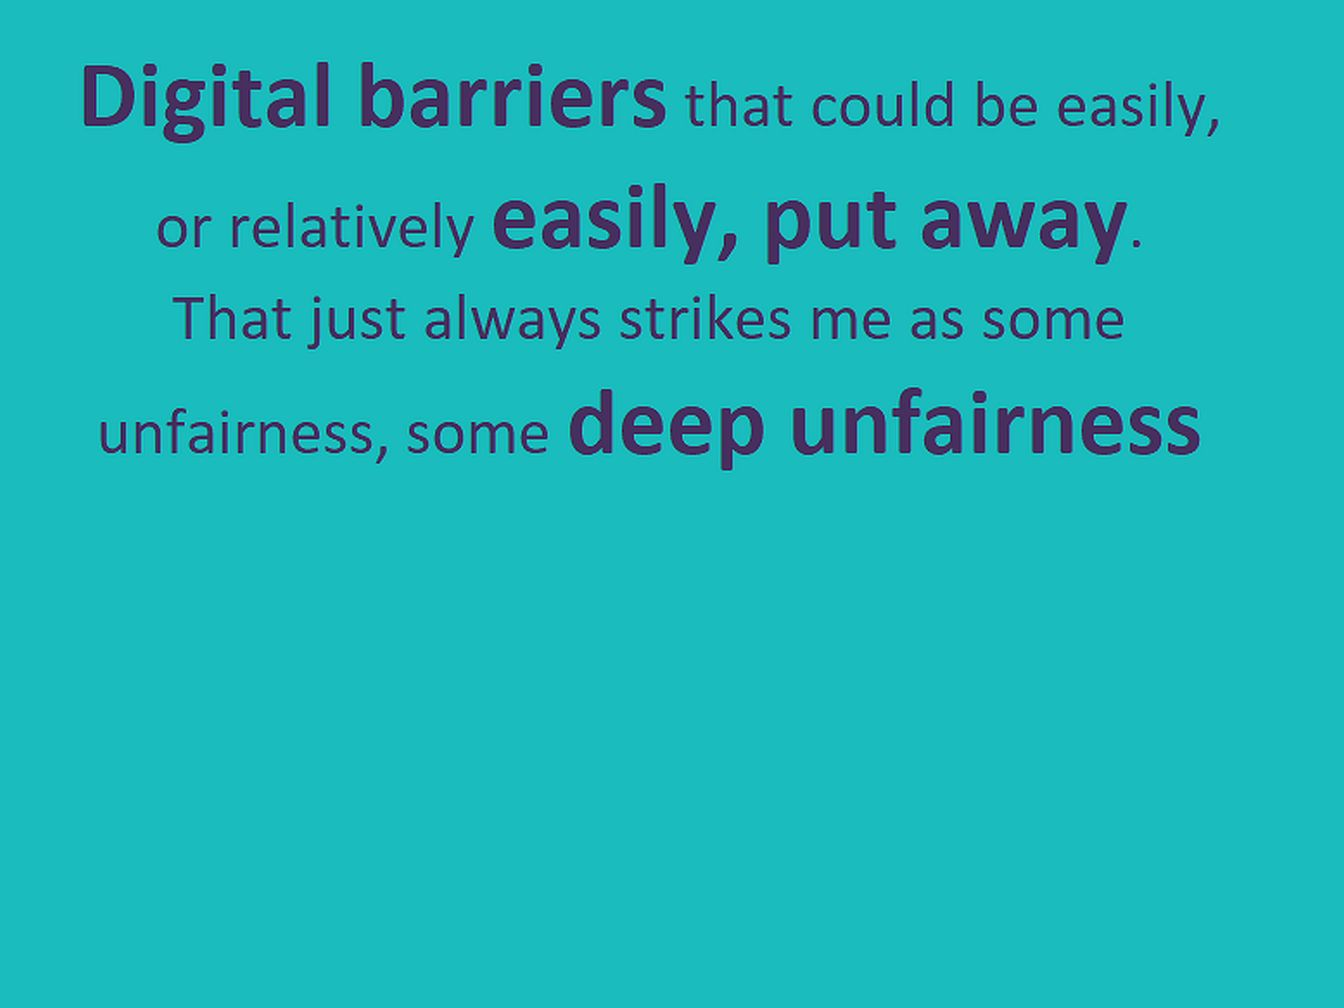 "Text: ""Digital barriers that could be easily, or relatively easily, put away.  That just always strikes me as some unfairness, some deep unfairness"" in purple on turquoise."